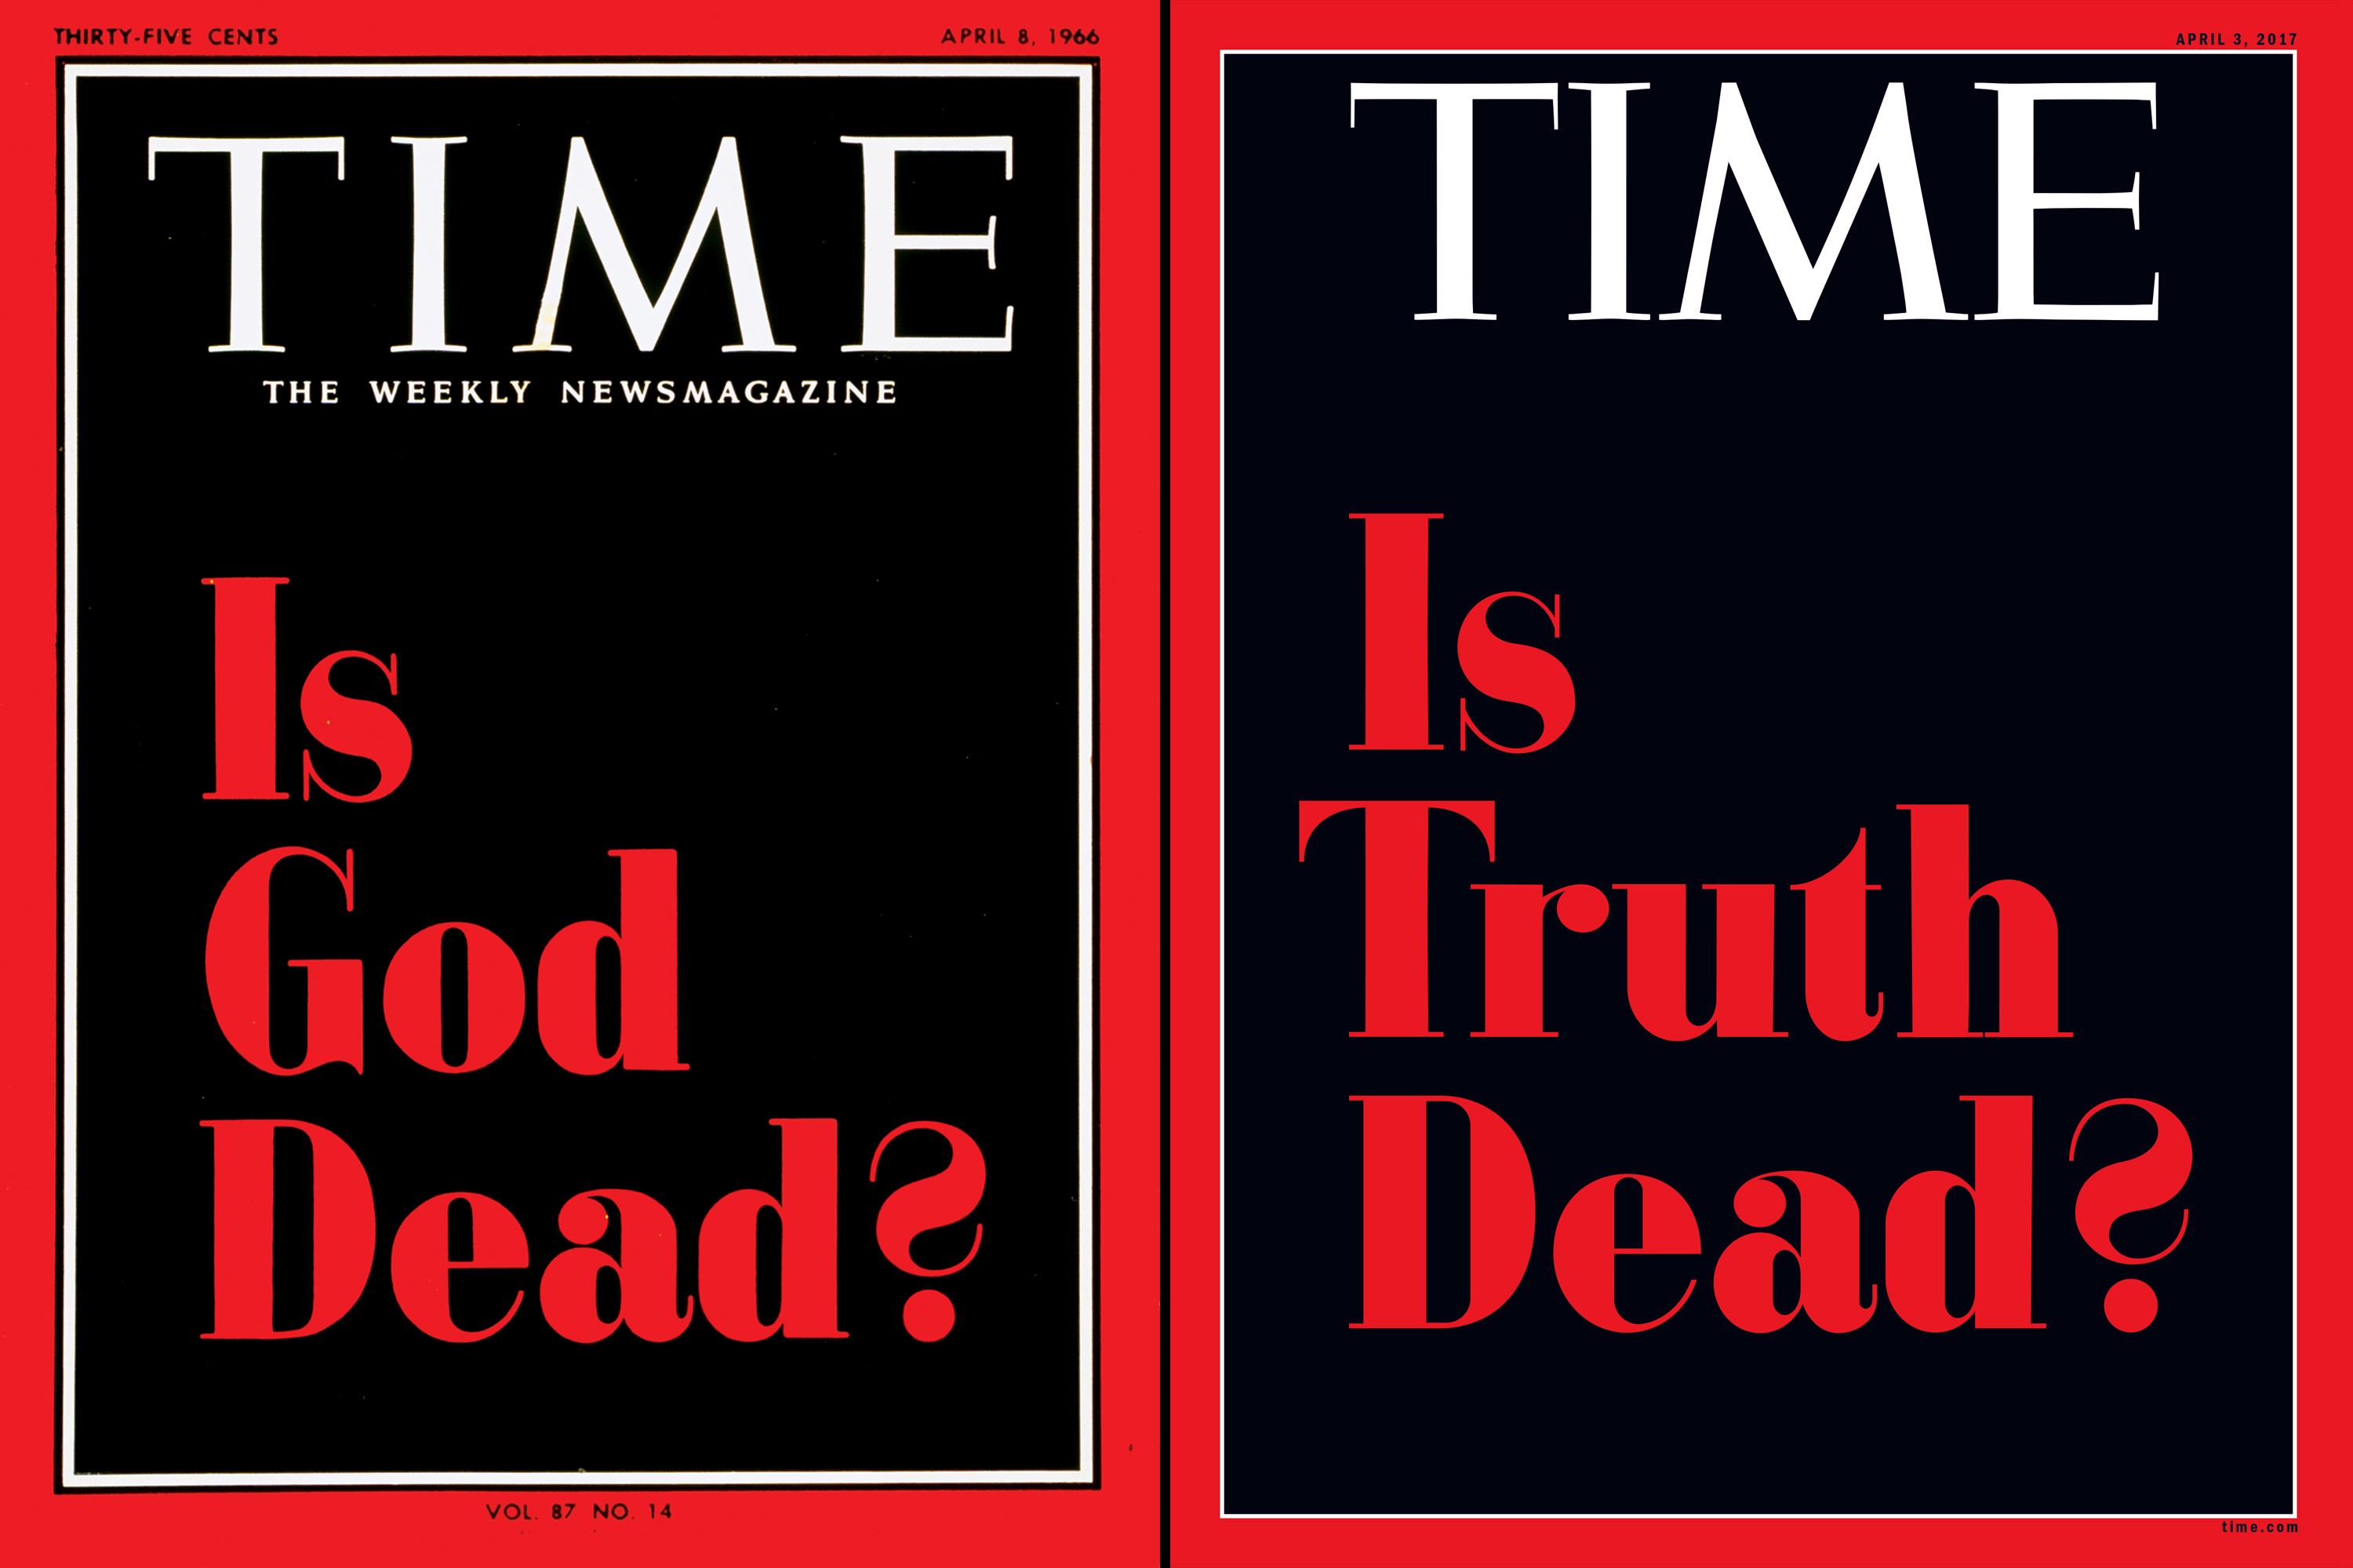 Is God Dead?,  April 8, 1966;  Is Truth Dead?,  April 3, 2017